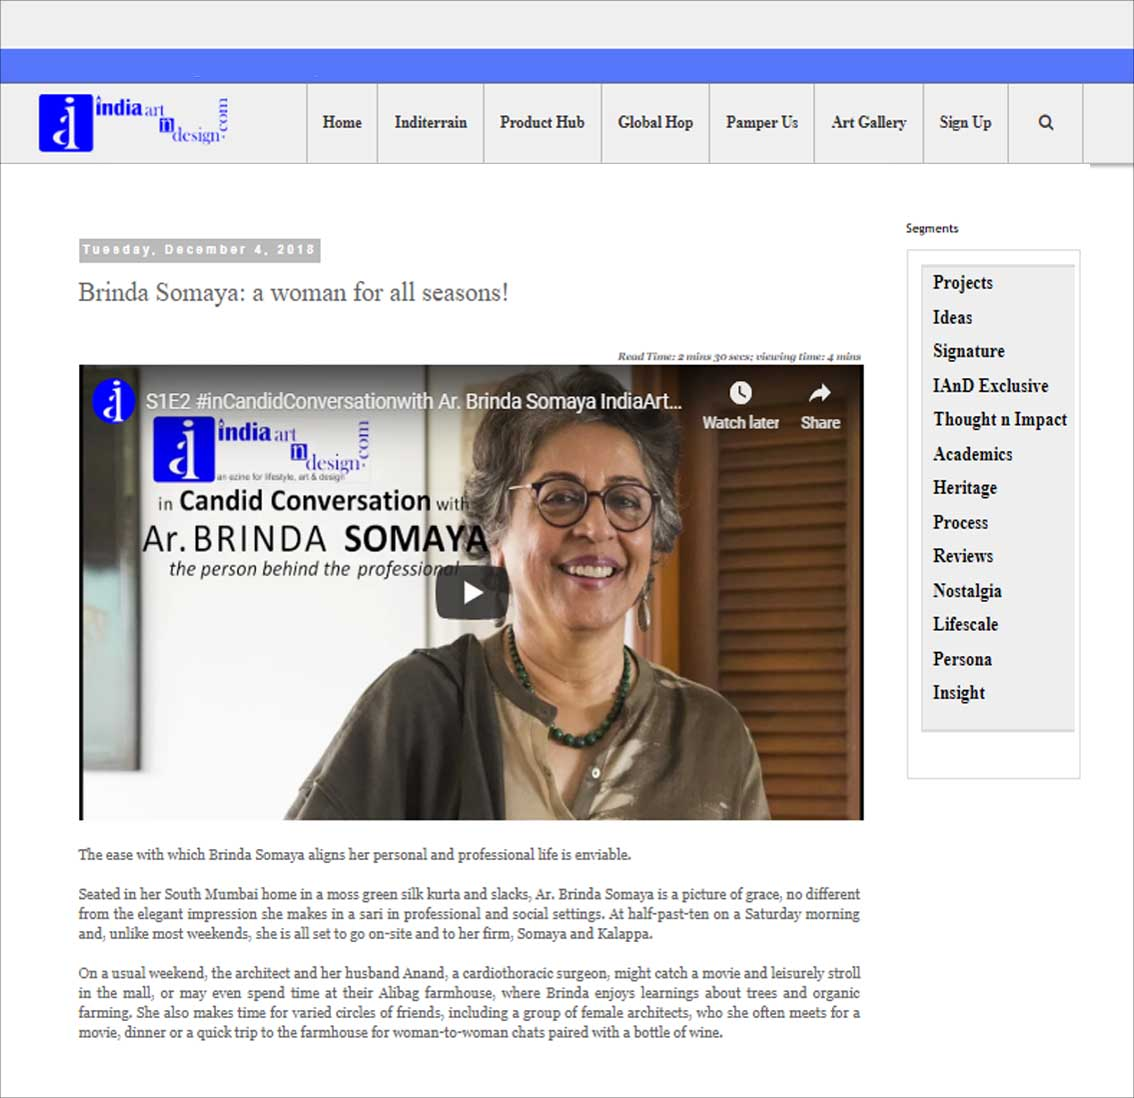 Brinda Somaya: a woman for all seasons! , India art n design - December 2018